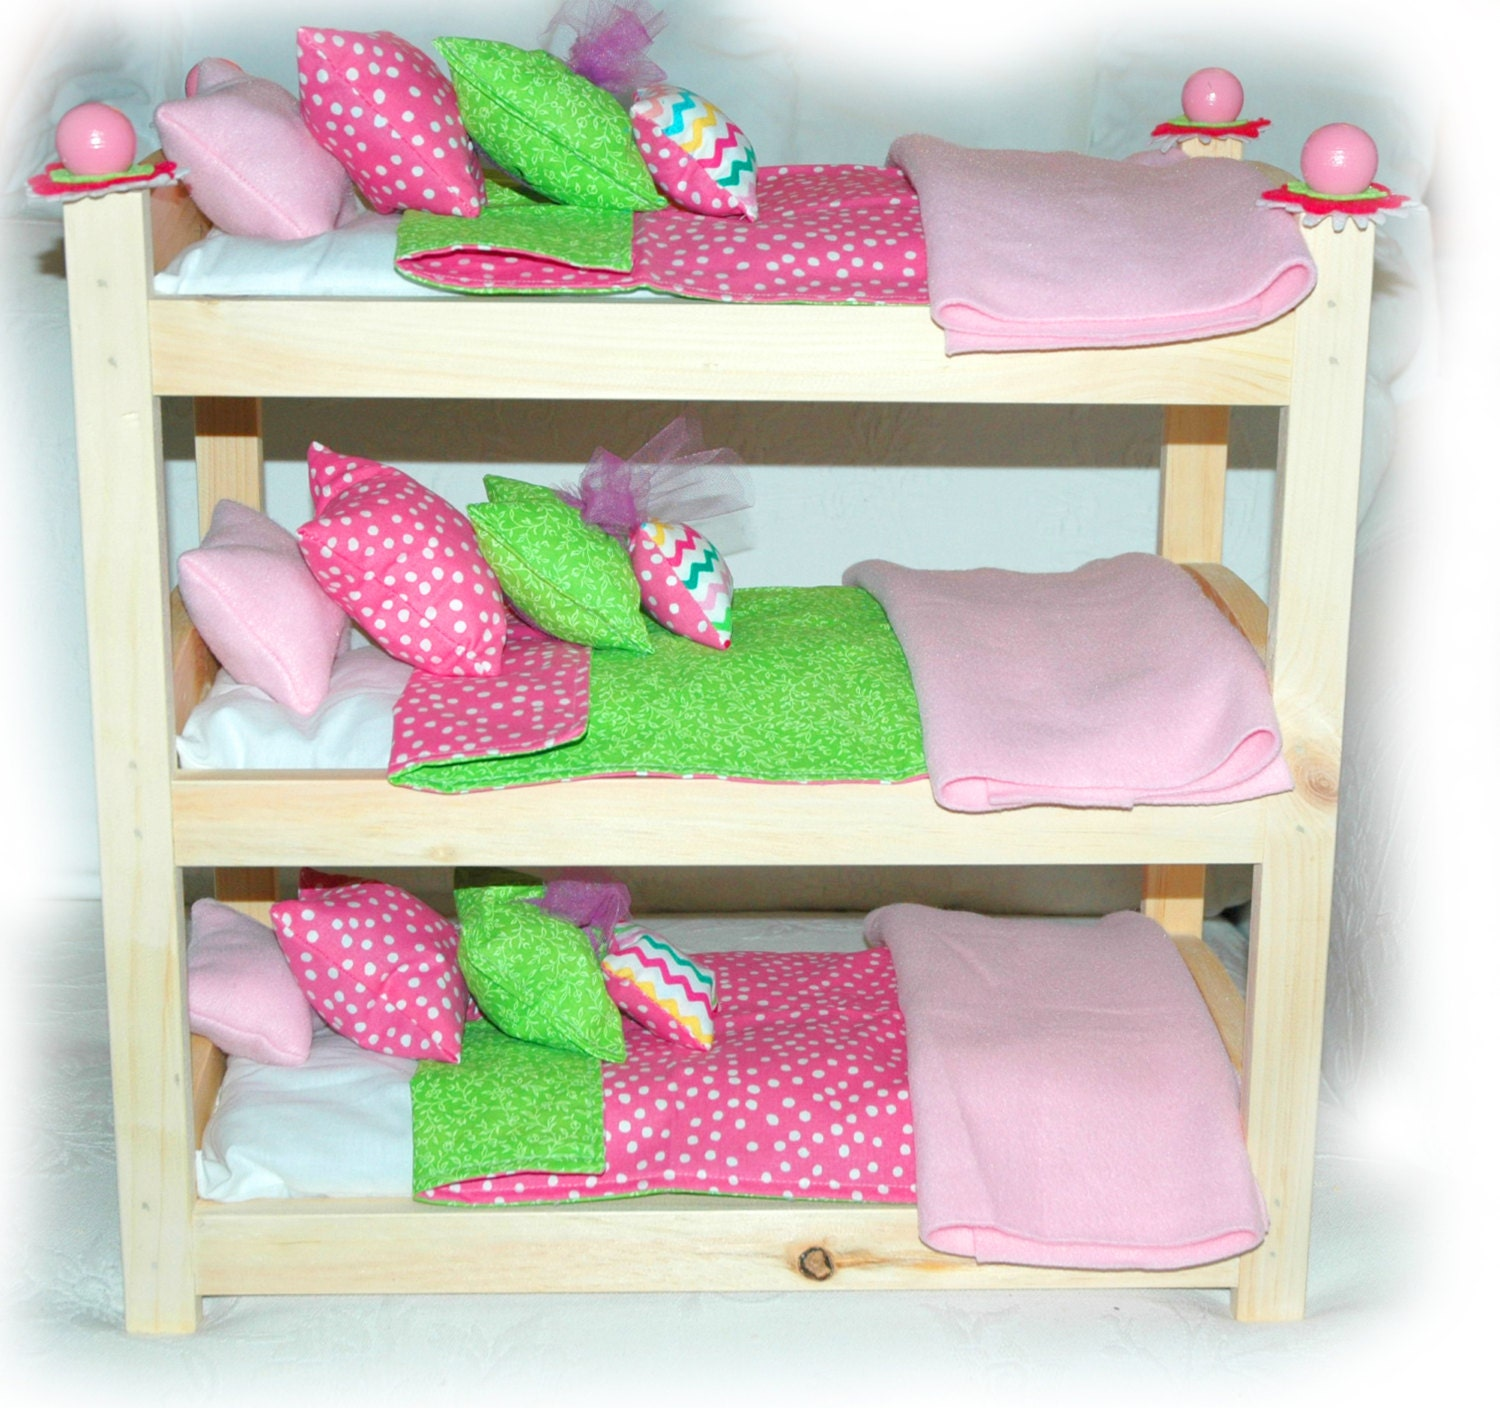 Bunk Bed Dolls: Triple Doll Bunk Bed Customize Cotton Candy American Made